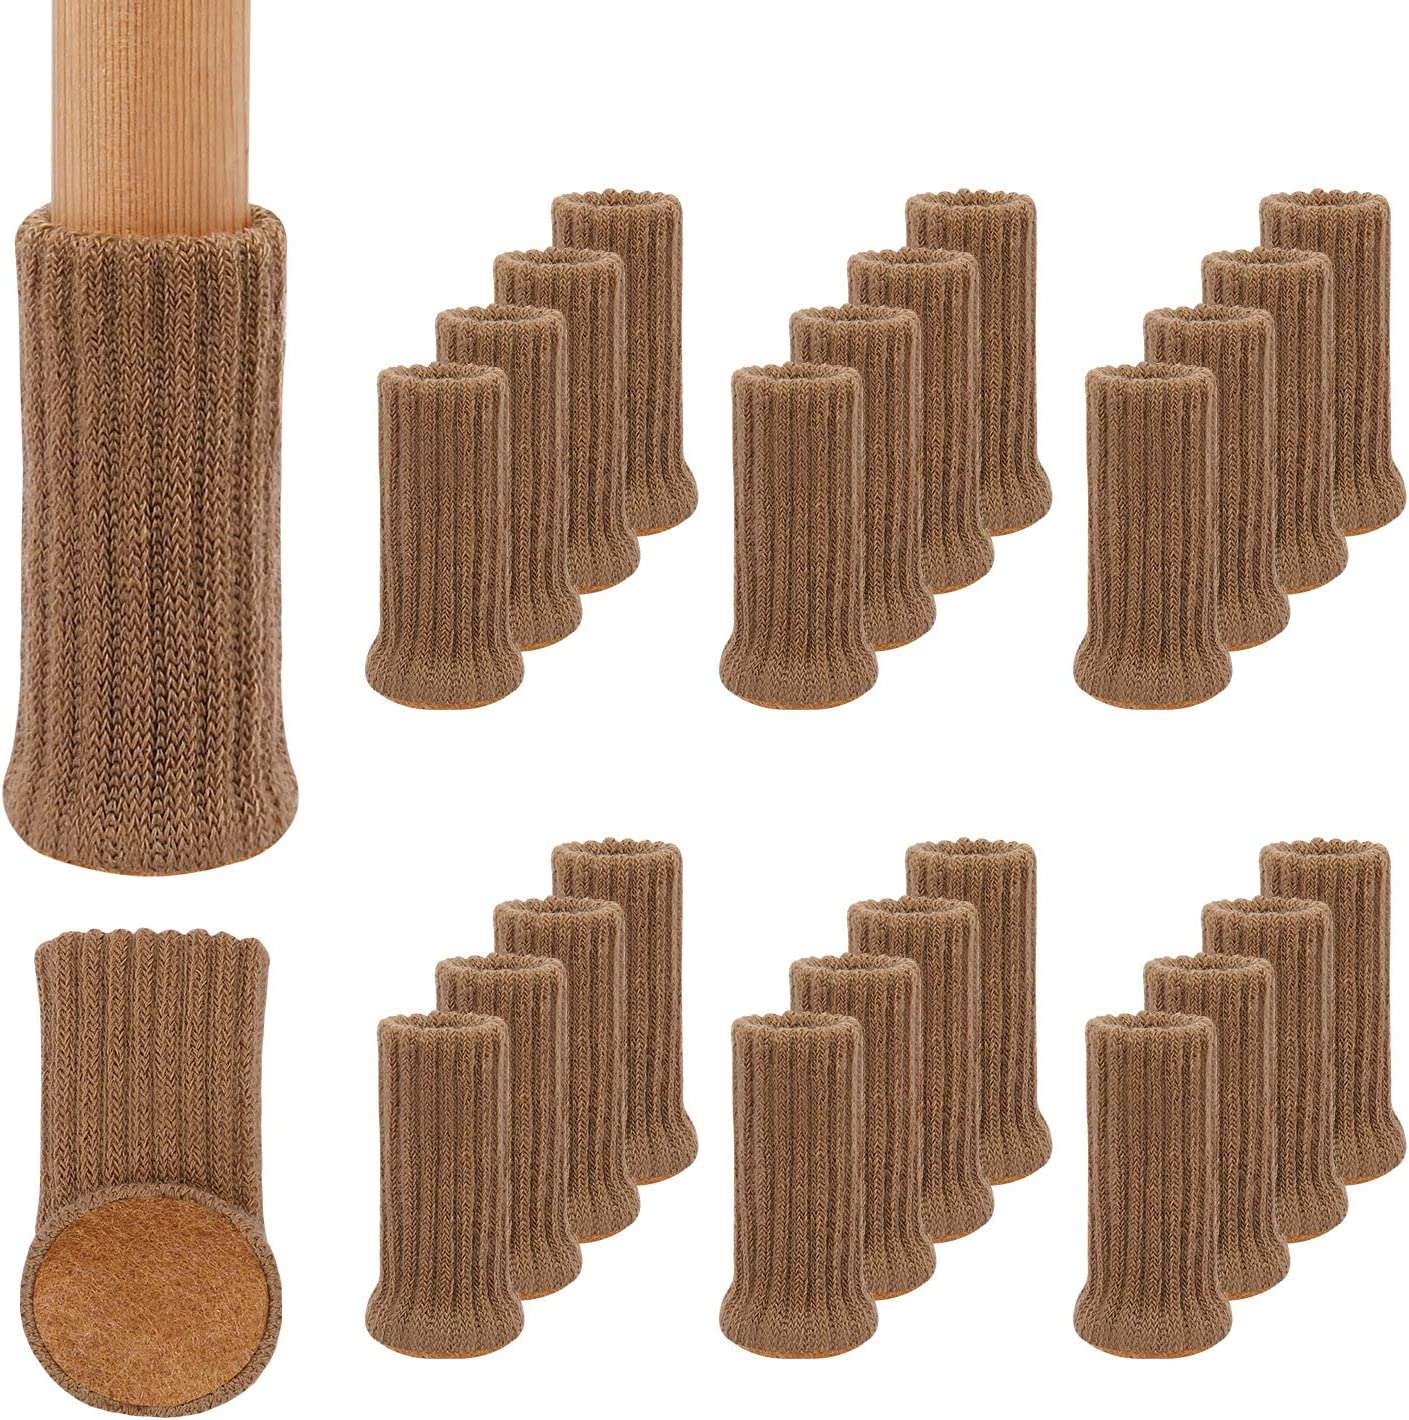 24Pack Furniture Leg Socks, High Elastic Knitted Chair Leg Protectors for Hardwood Floors, Fits All Shapes of Chair Legs with Diameter from 3/4 inch to 1-1/2 inch, Light Brown